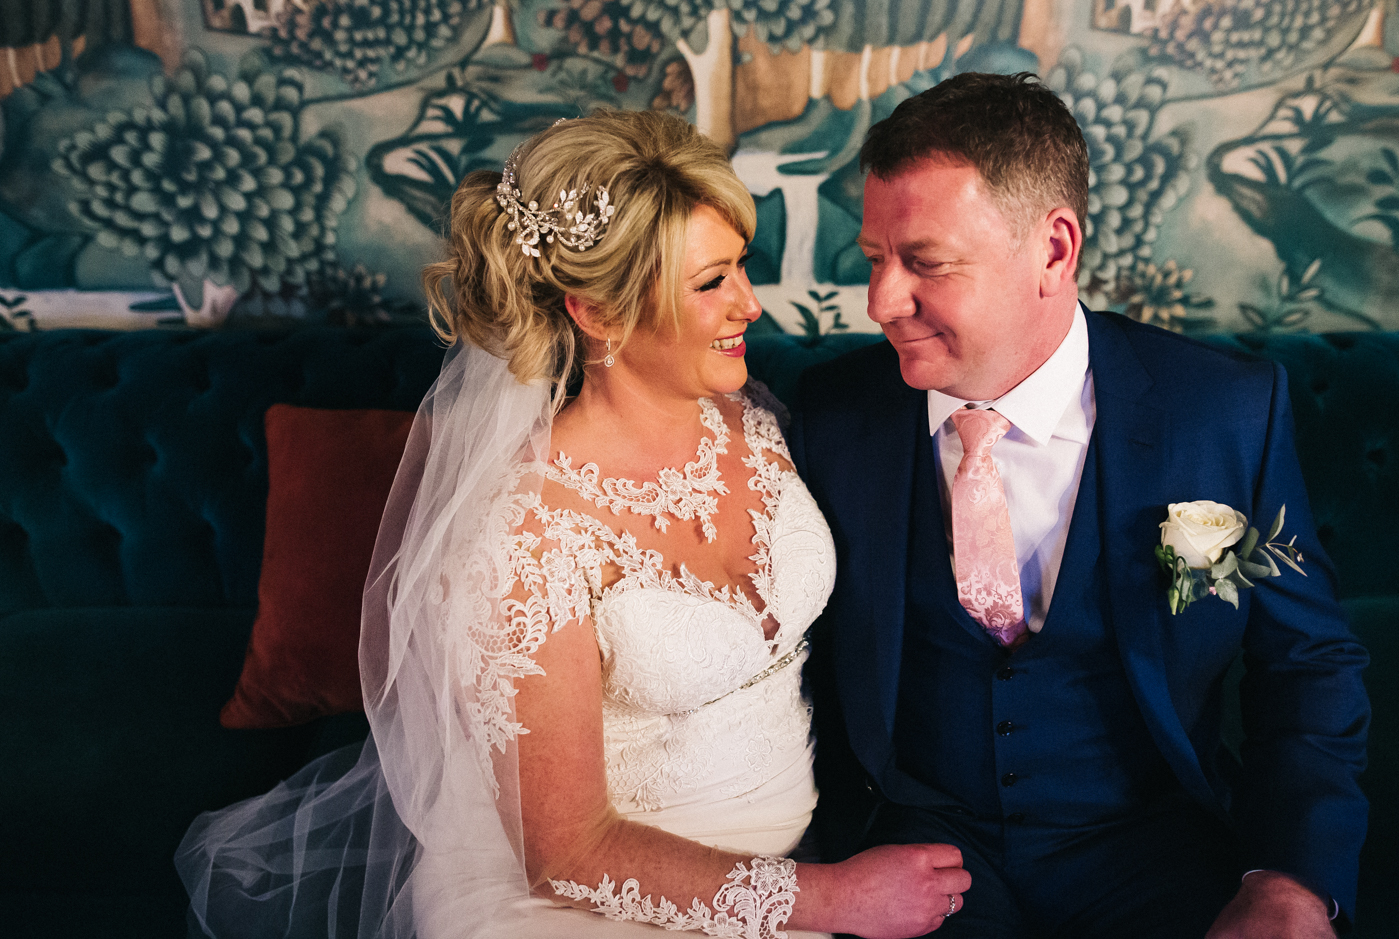 the bride and groom sit closely on a sofa and look at each other. cleveland tontine wedding teesside north yorkshire - relaxed and creative wedding photographer